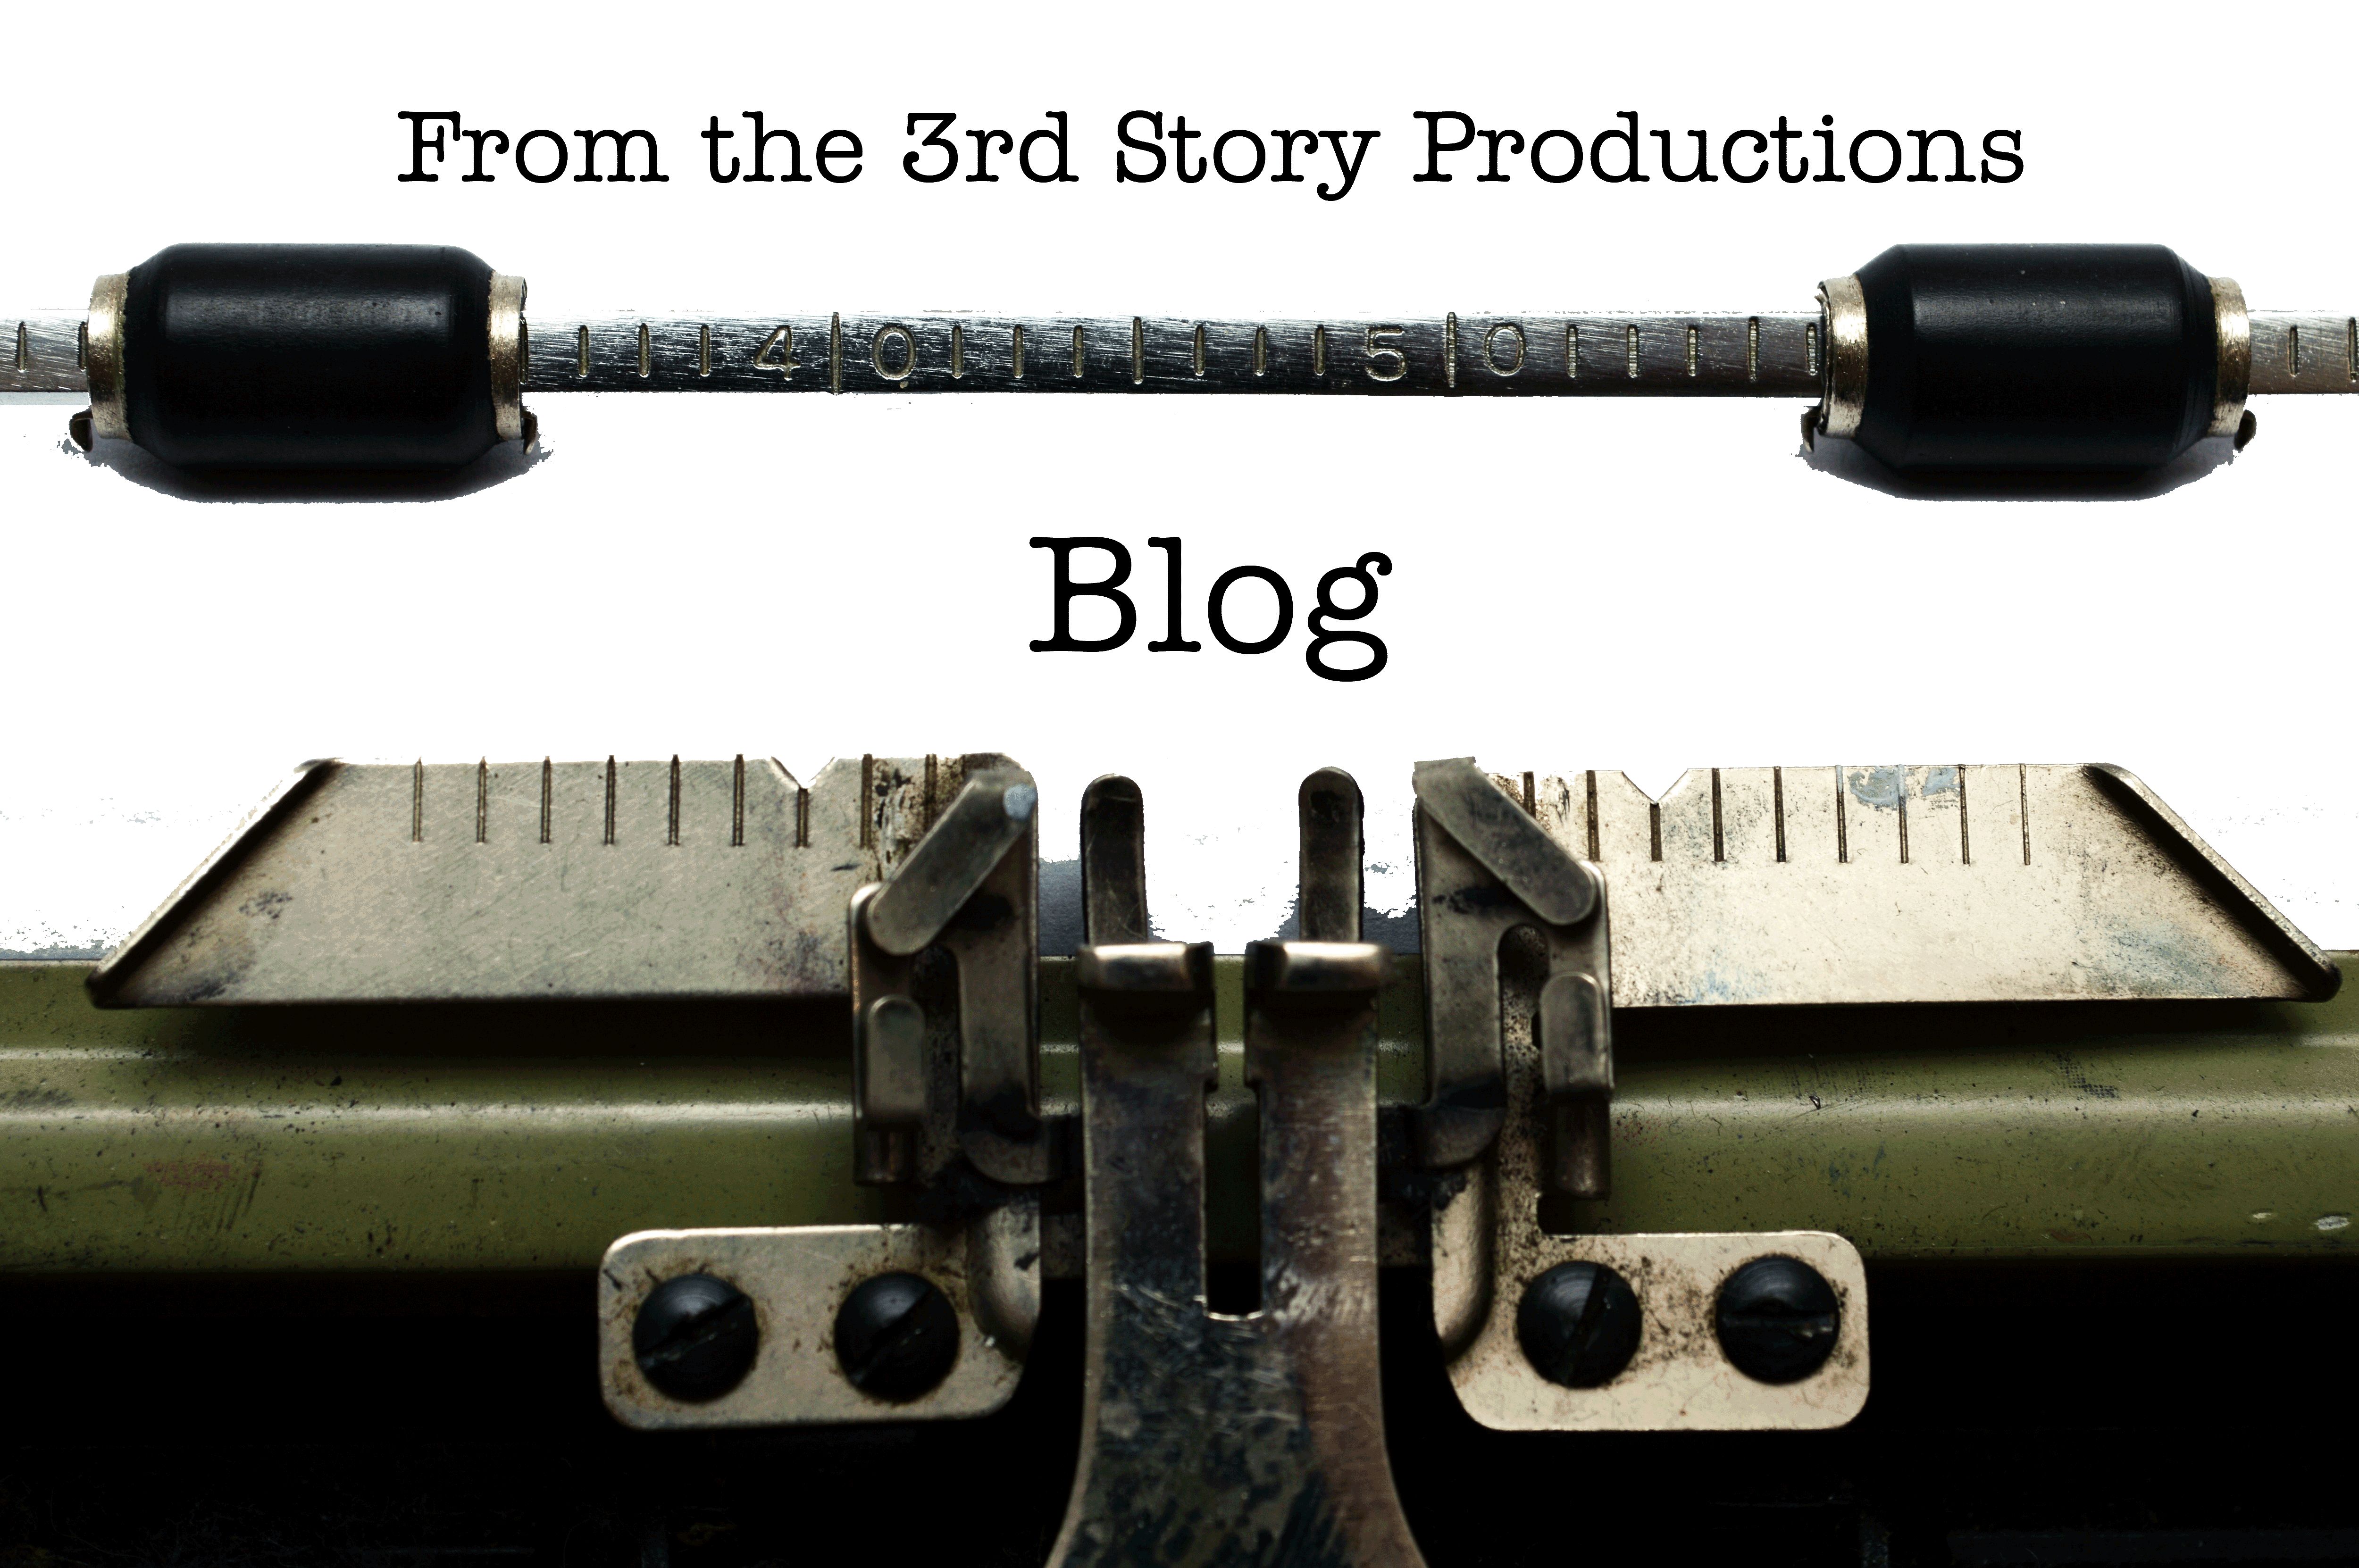 Blog 3 - Posts added to TopBlogSites